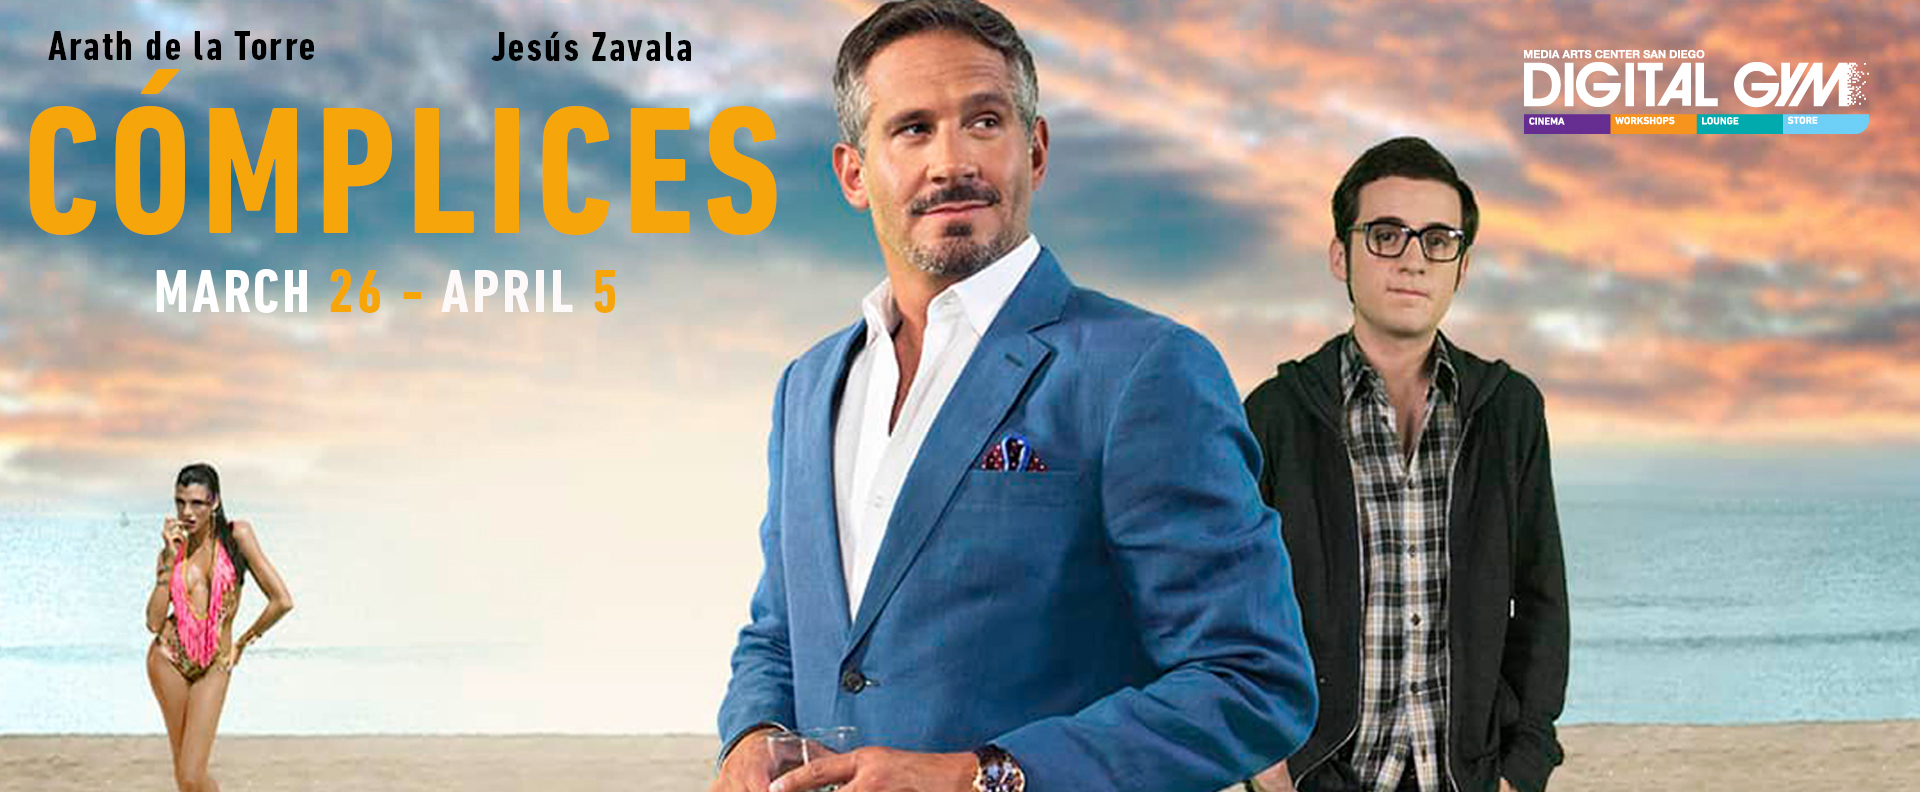 CÓMPLICES- Arath de la Torre, Jesus Zavala in comedy from the Dominican Republic (March 26 – April 5)